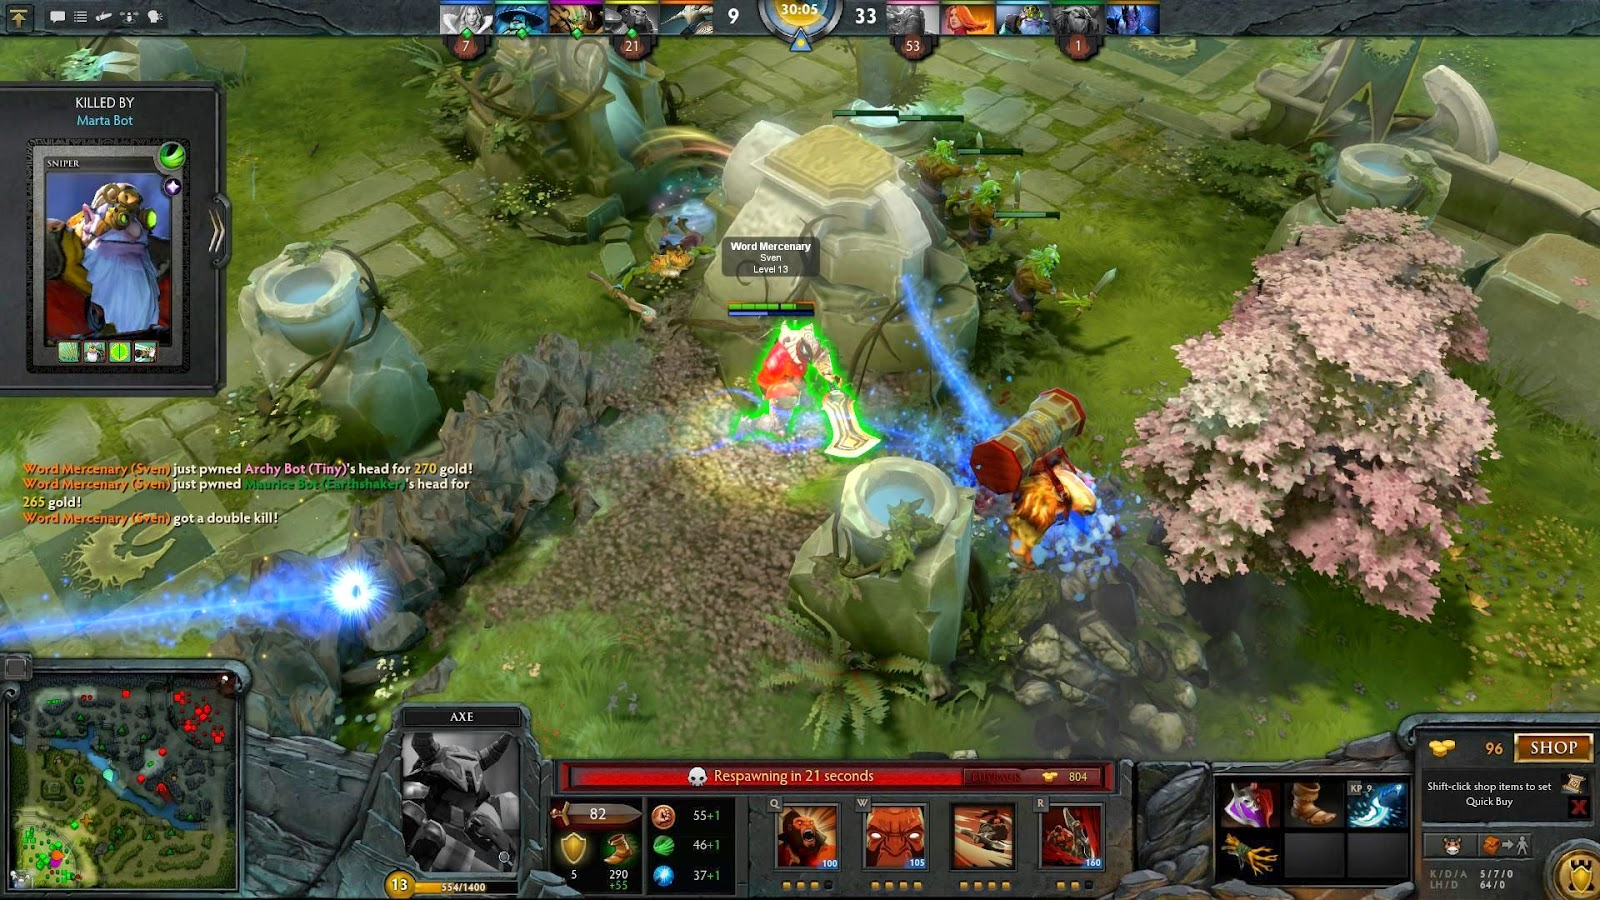 Dota_2 Steam free download full version